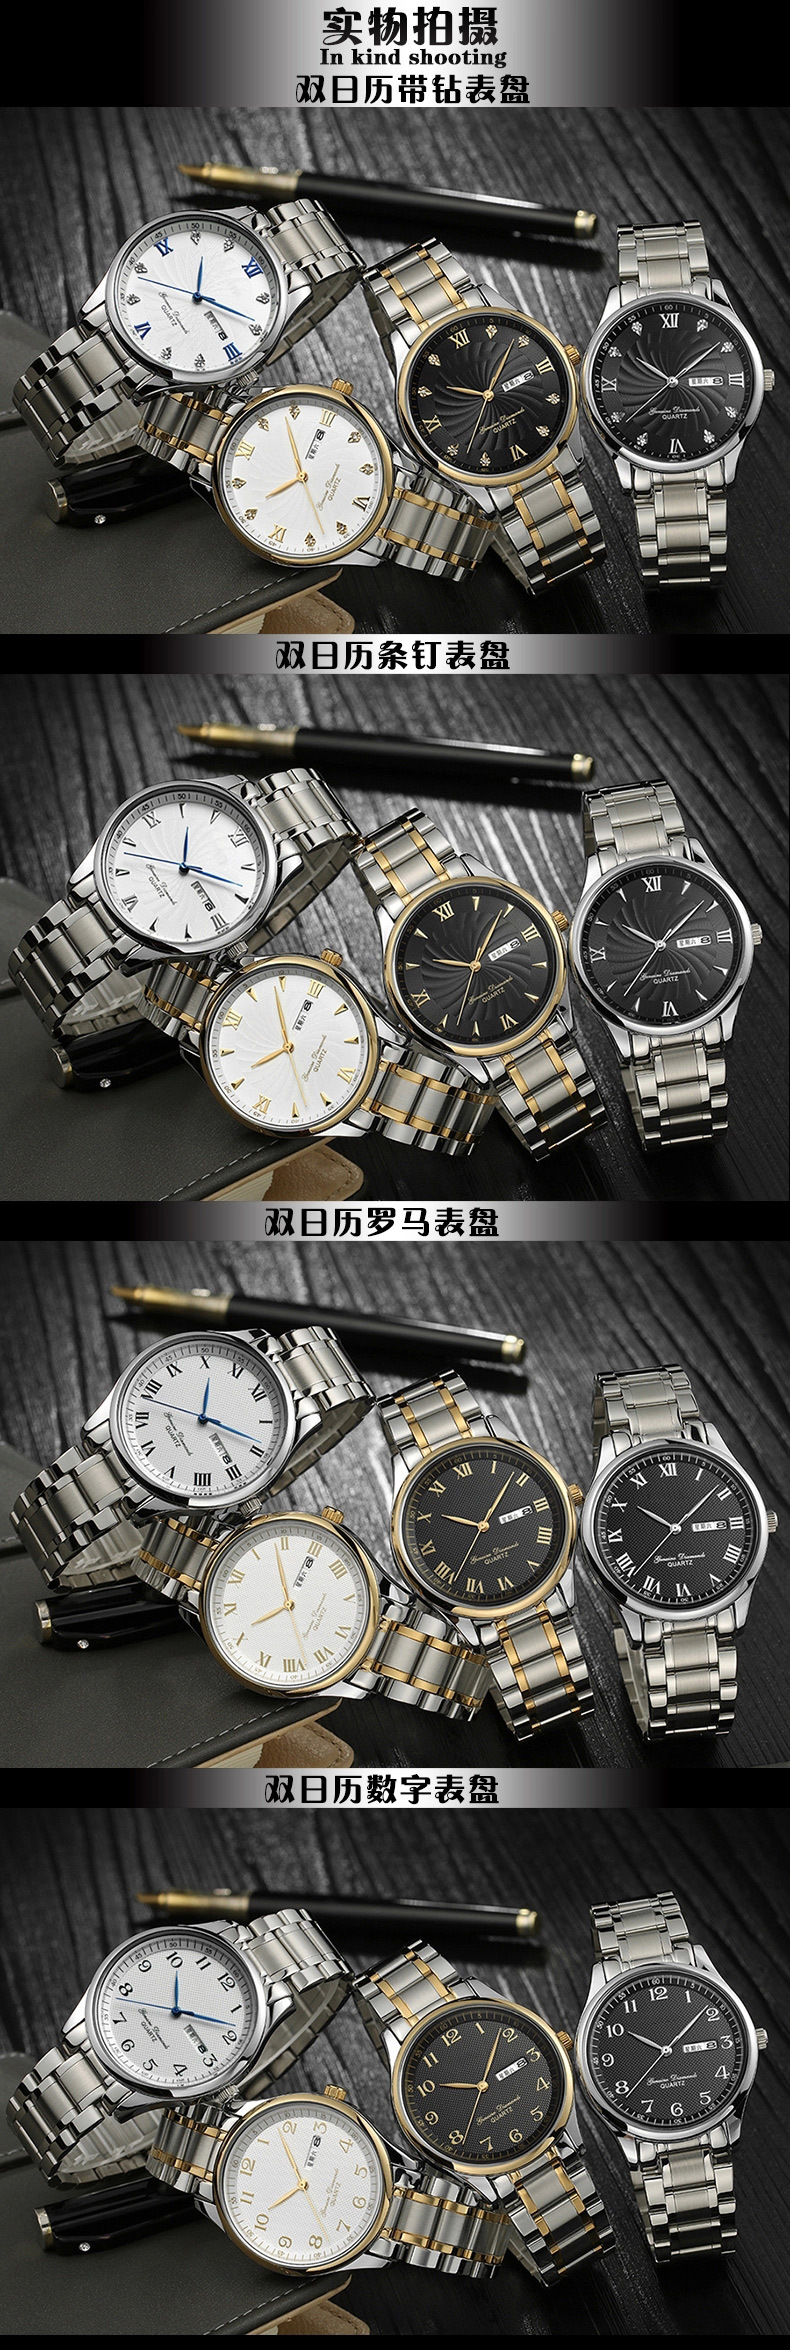 High Quanlity All Stainless Steel Wrist Watches For Men, cheap price from 3 usd per watch